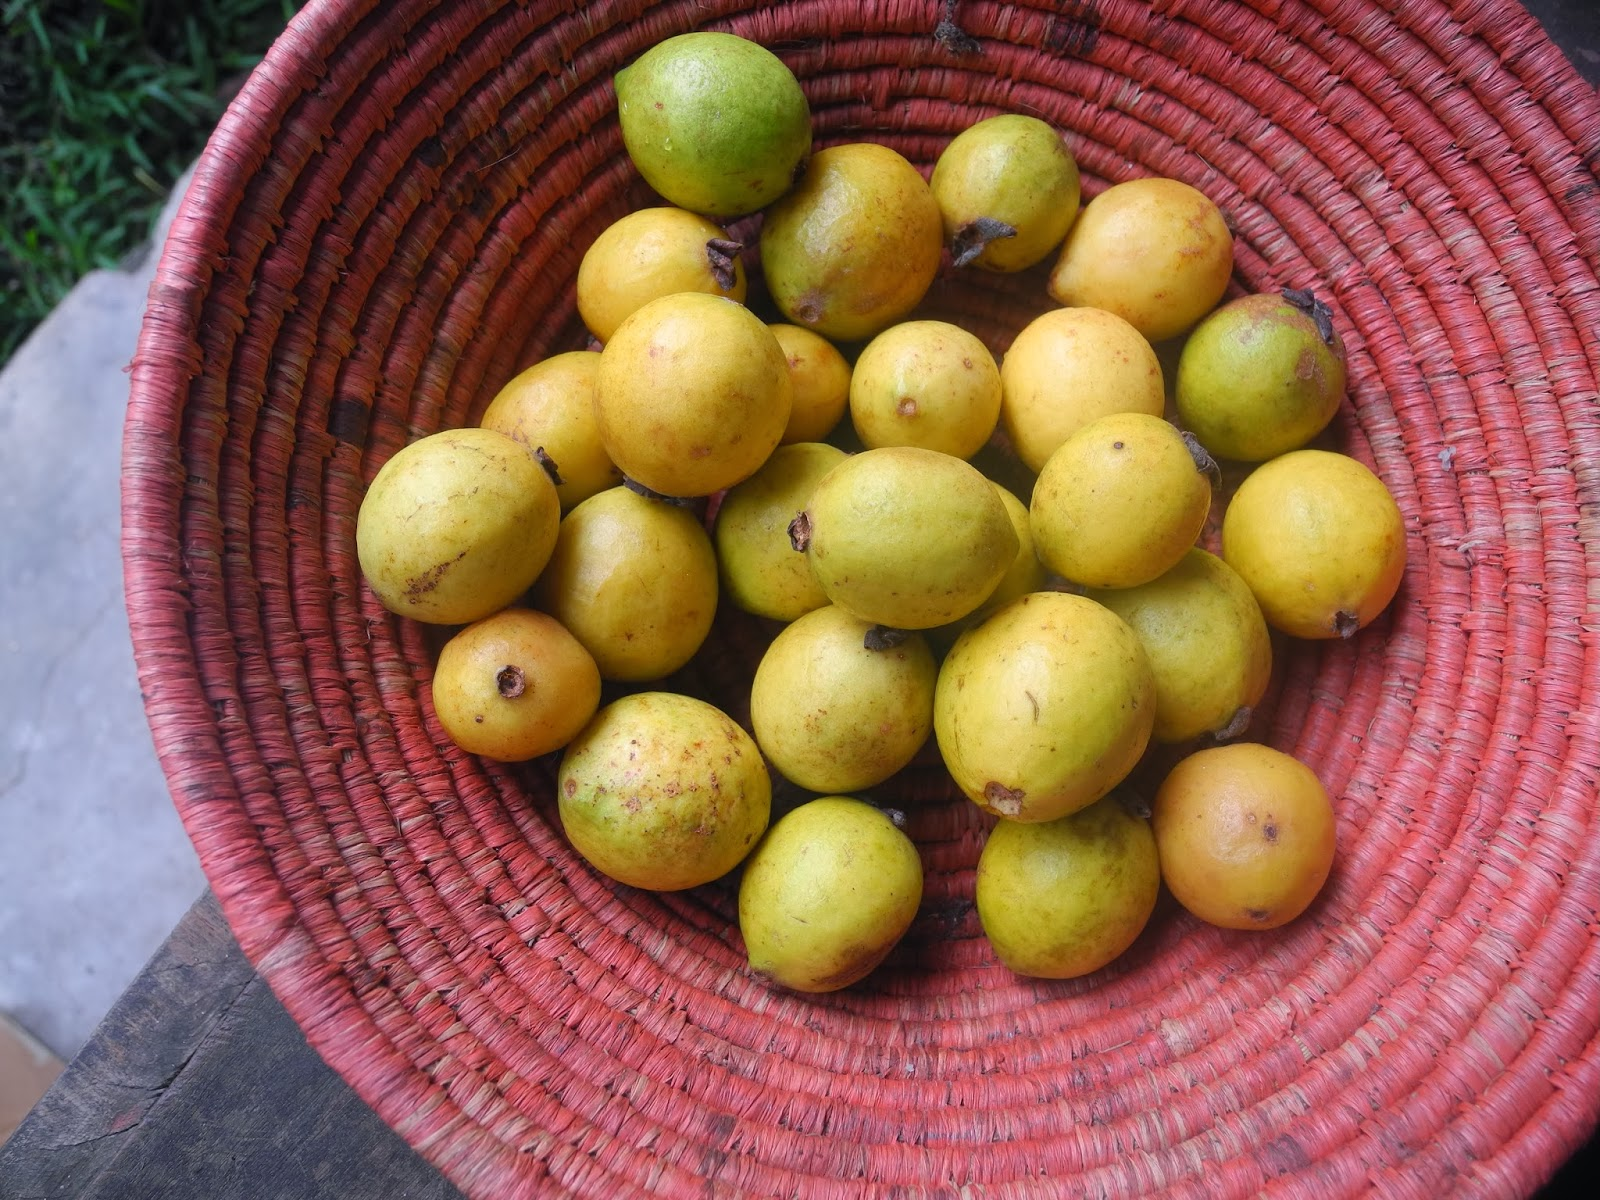 Modern Nomad: A field guide to fruit in Madagascar